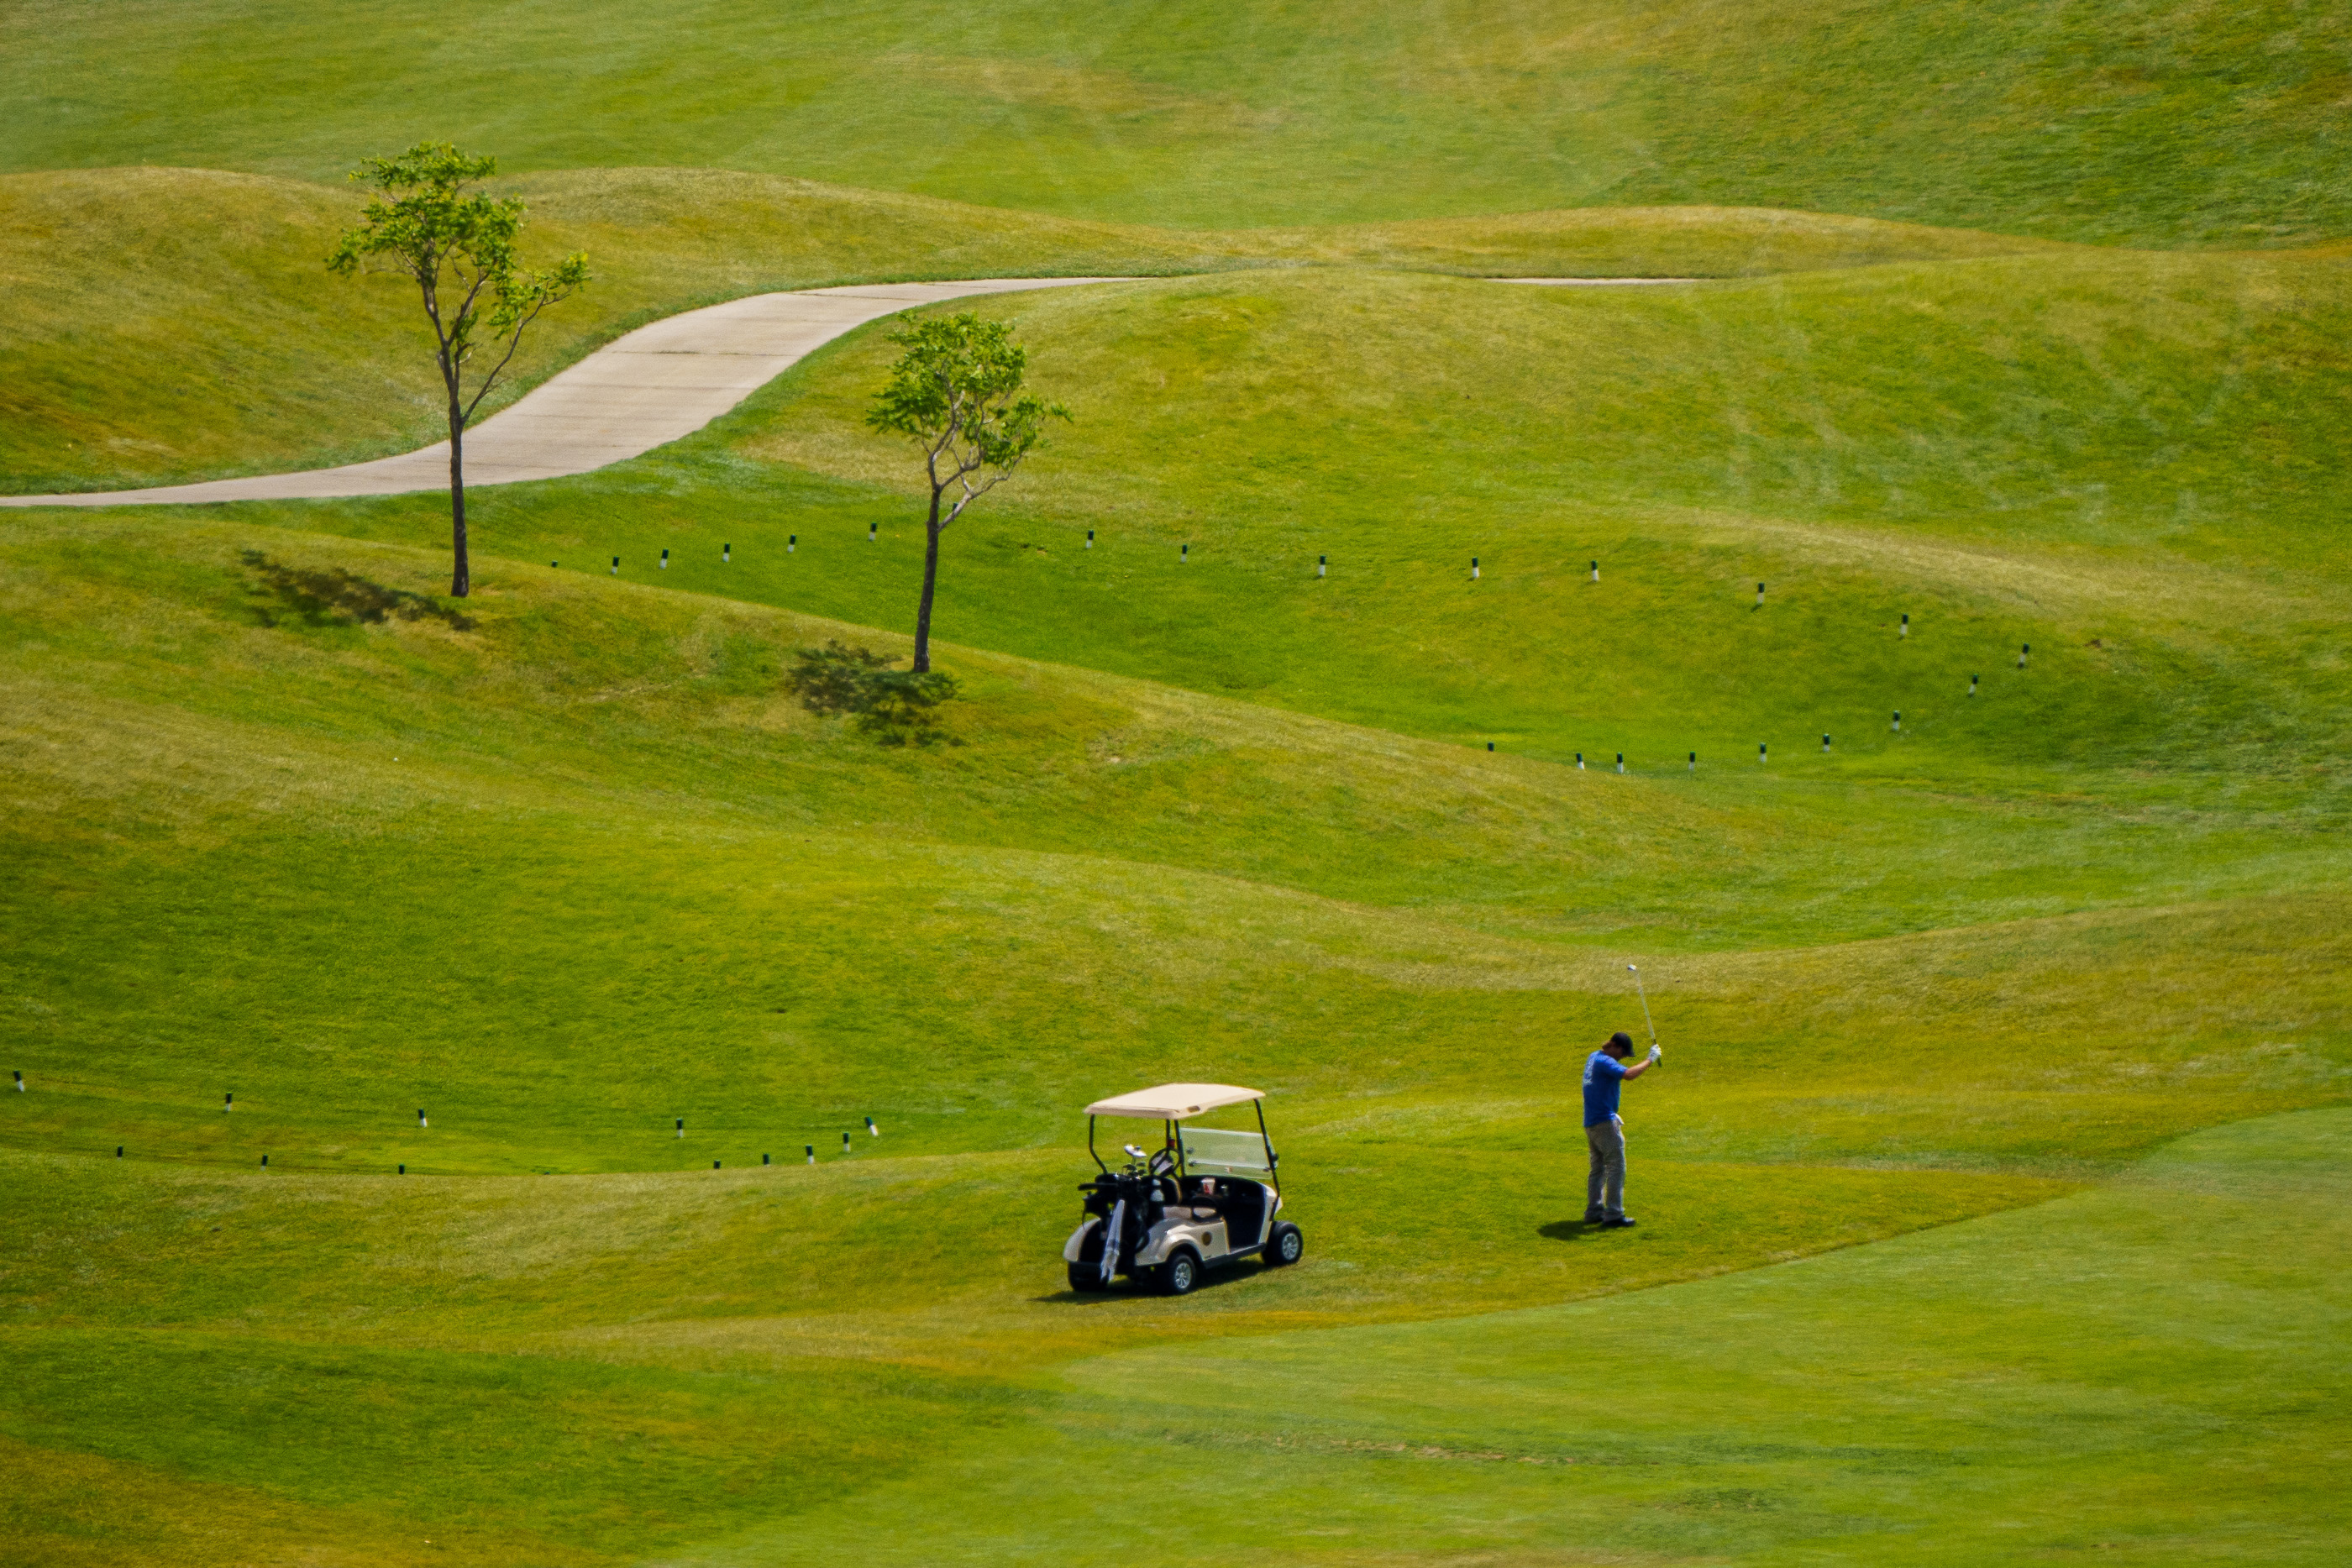 sltrib.com - As climate change tightens its grip, are golf courses a luxury we can no longer afford?